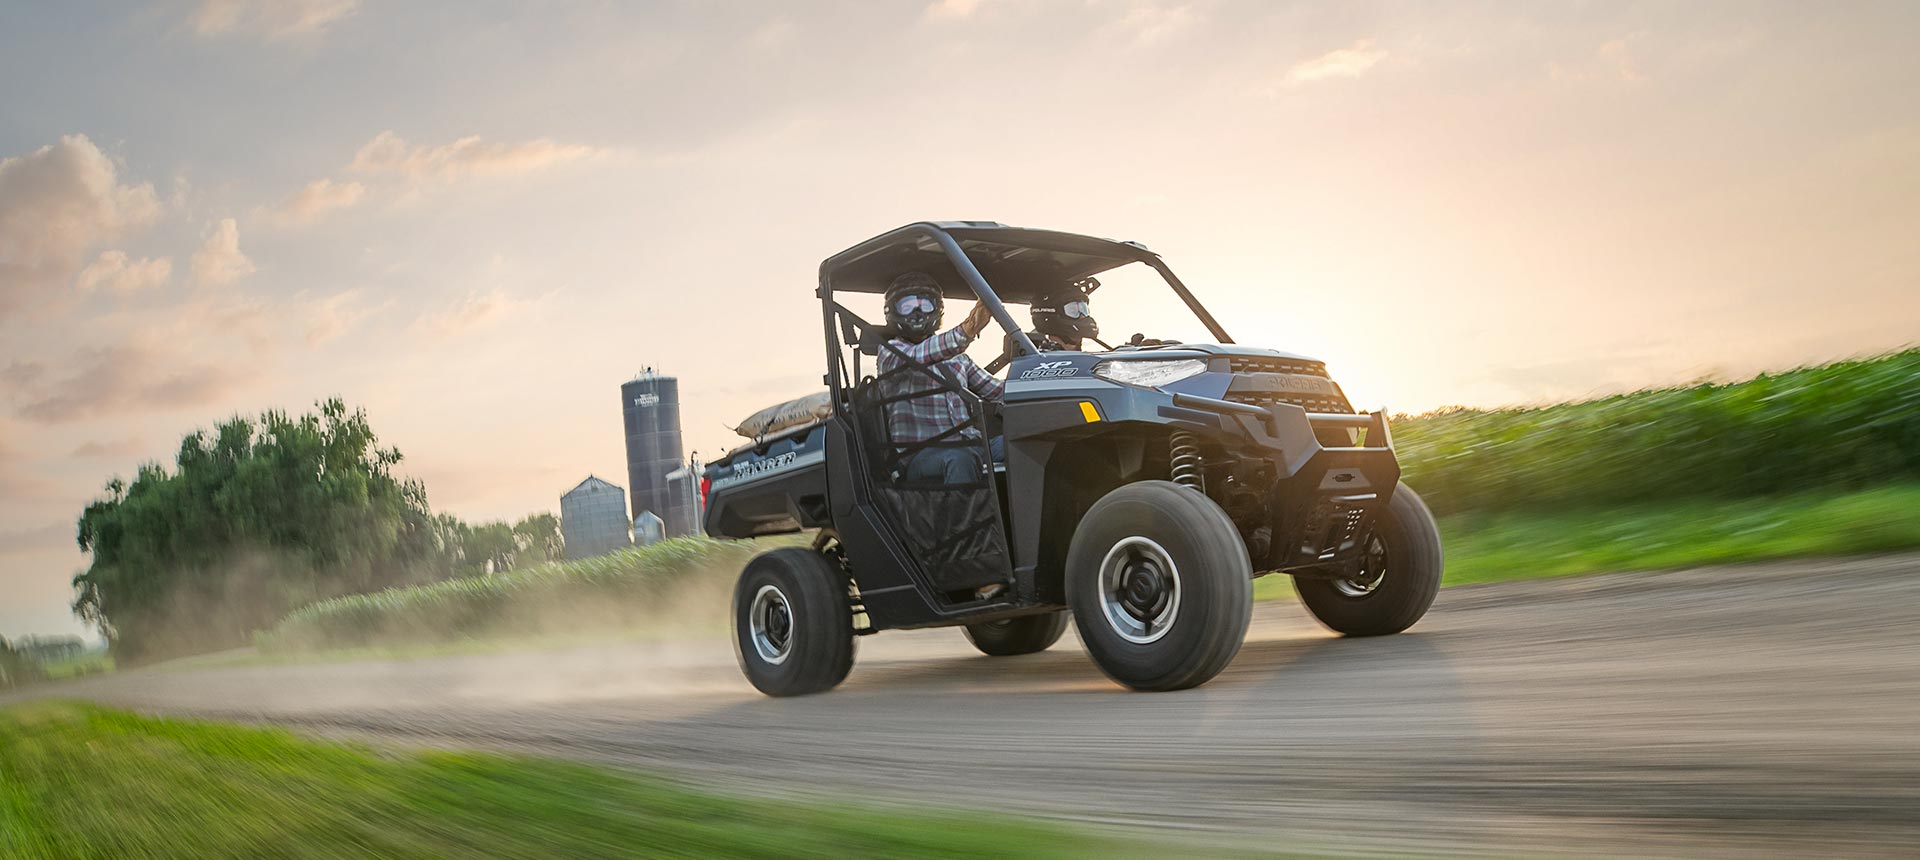 2019 Polaris Ranger XP 1000 EPS in Logan, Utah - Photo 11